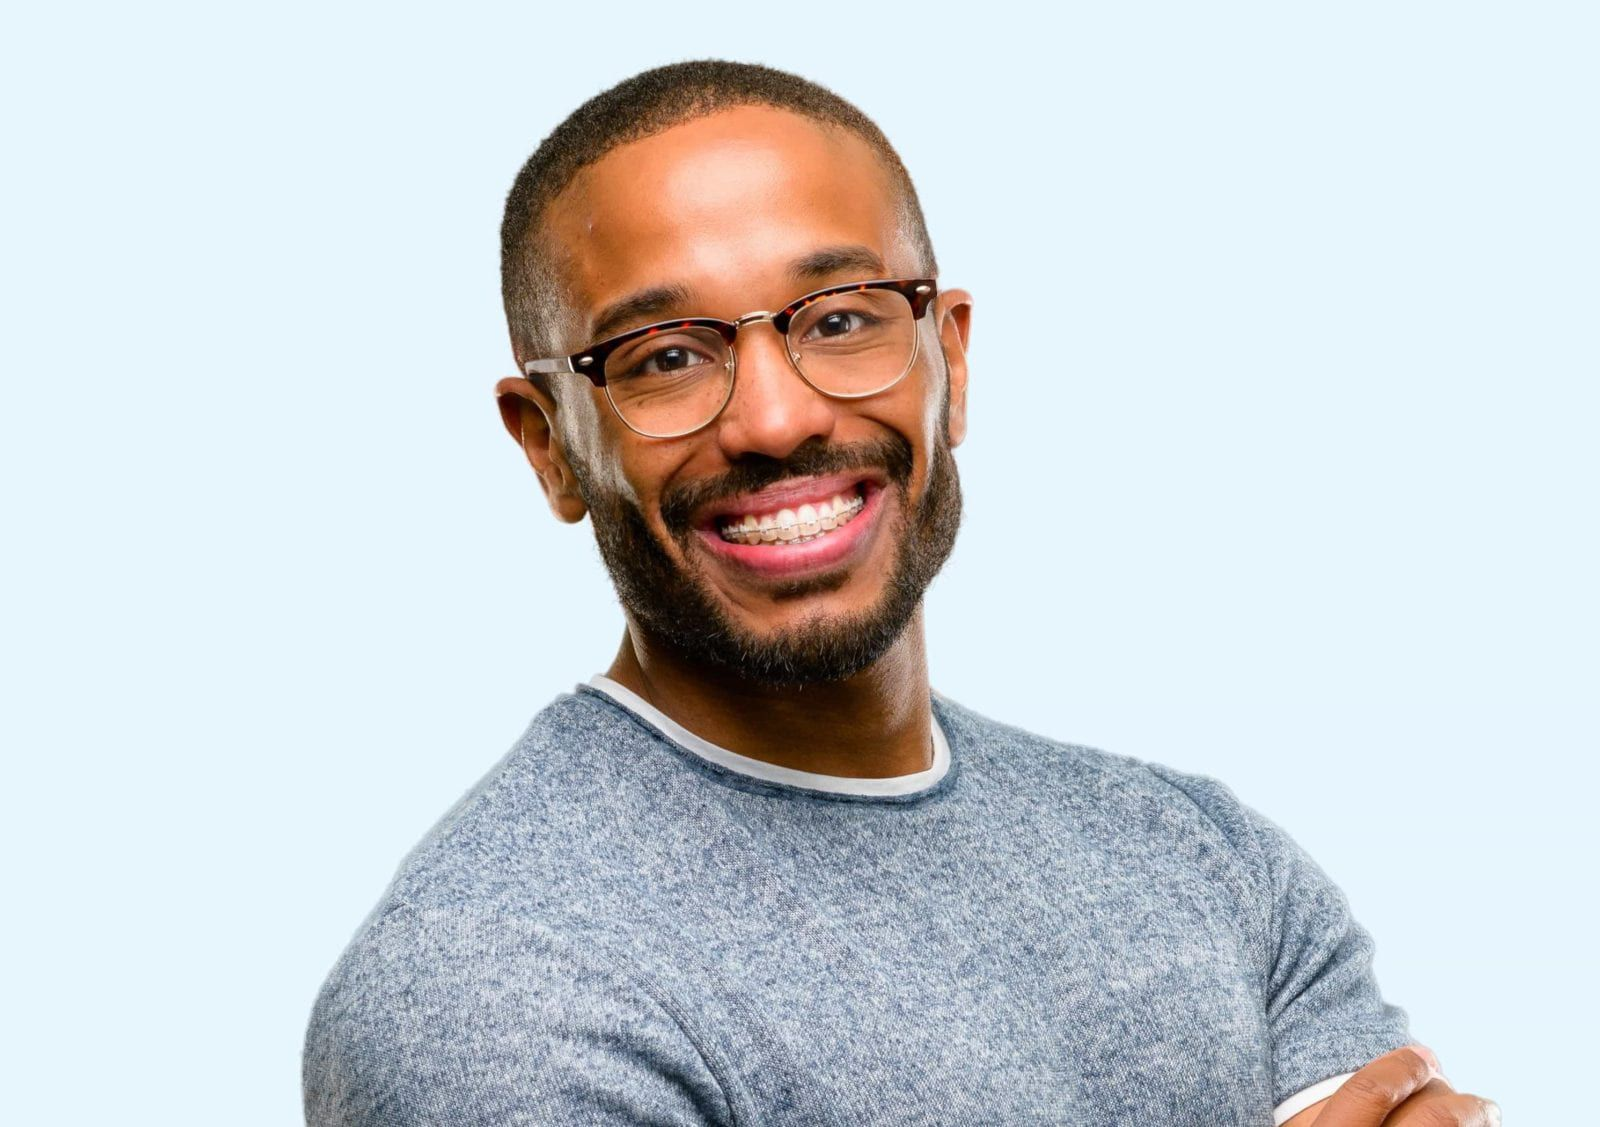 black man with braces smiling